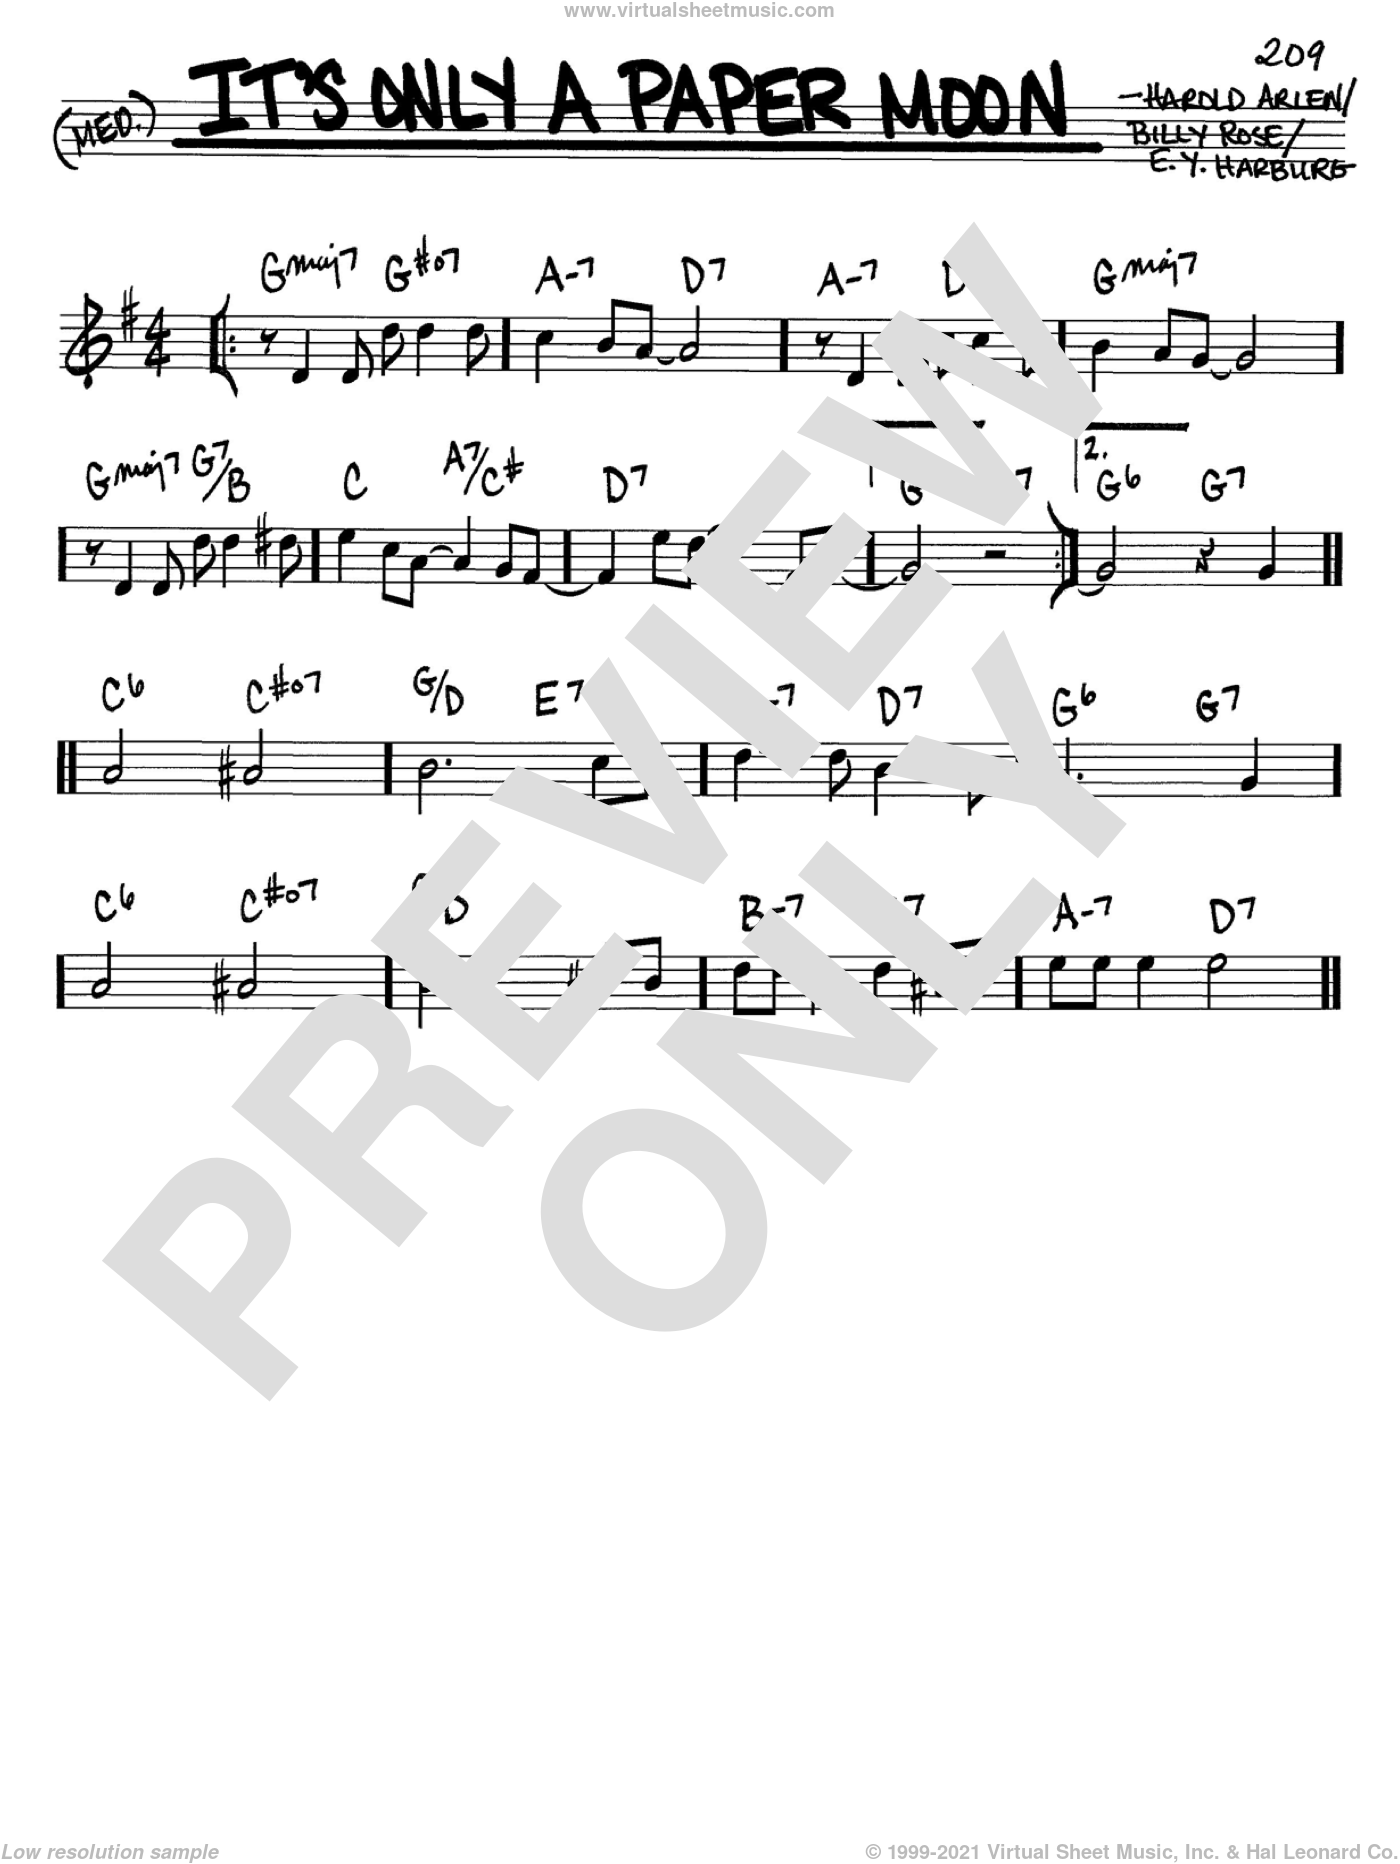 It's Only A Paper Moon sheet music for voice and other instruments (in C) by E.Y. Harburg, Billy Rose and Harold Arlen, intermediate skill level